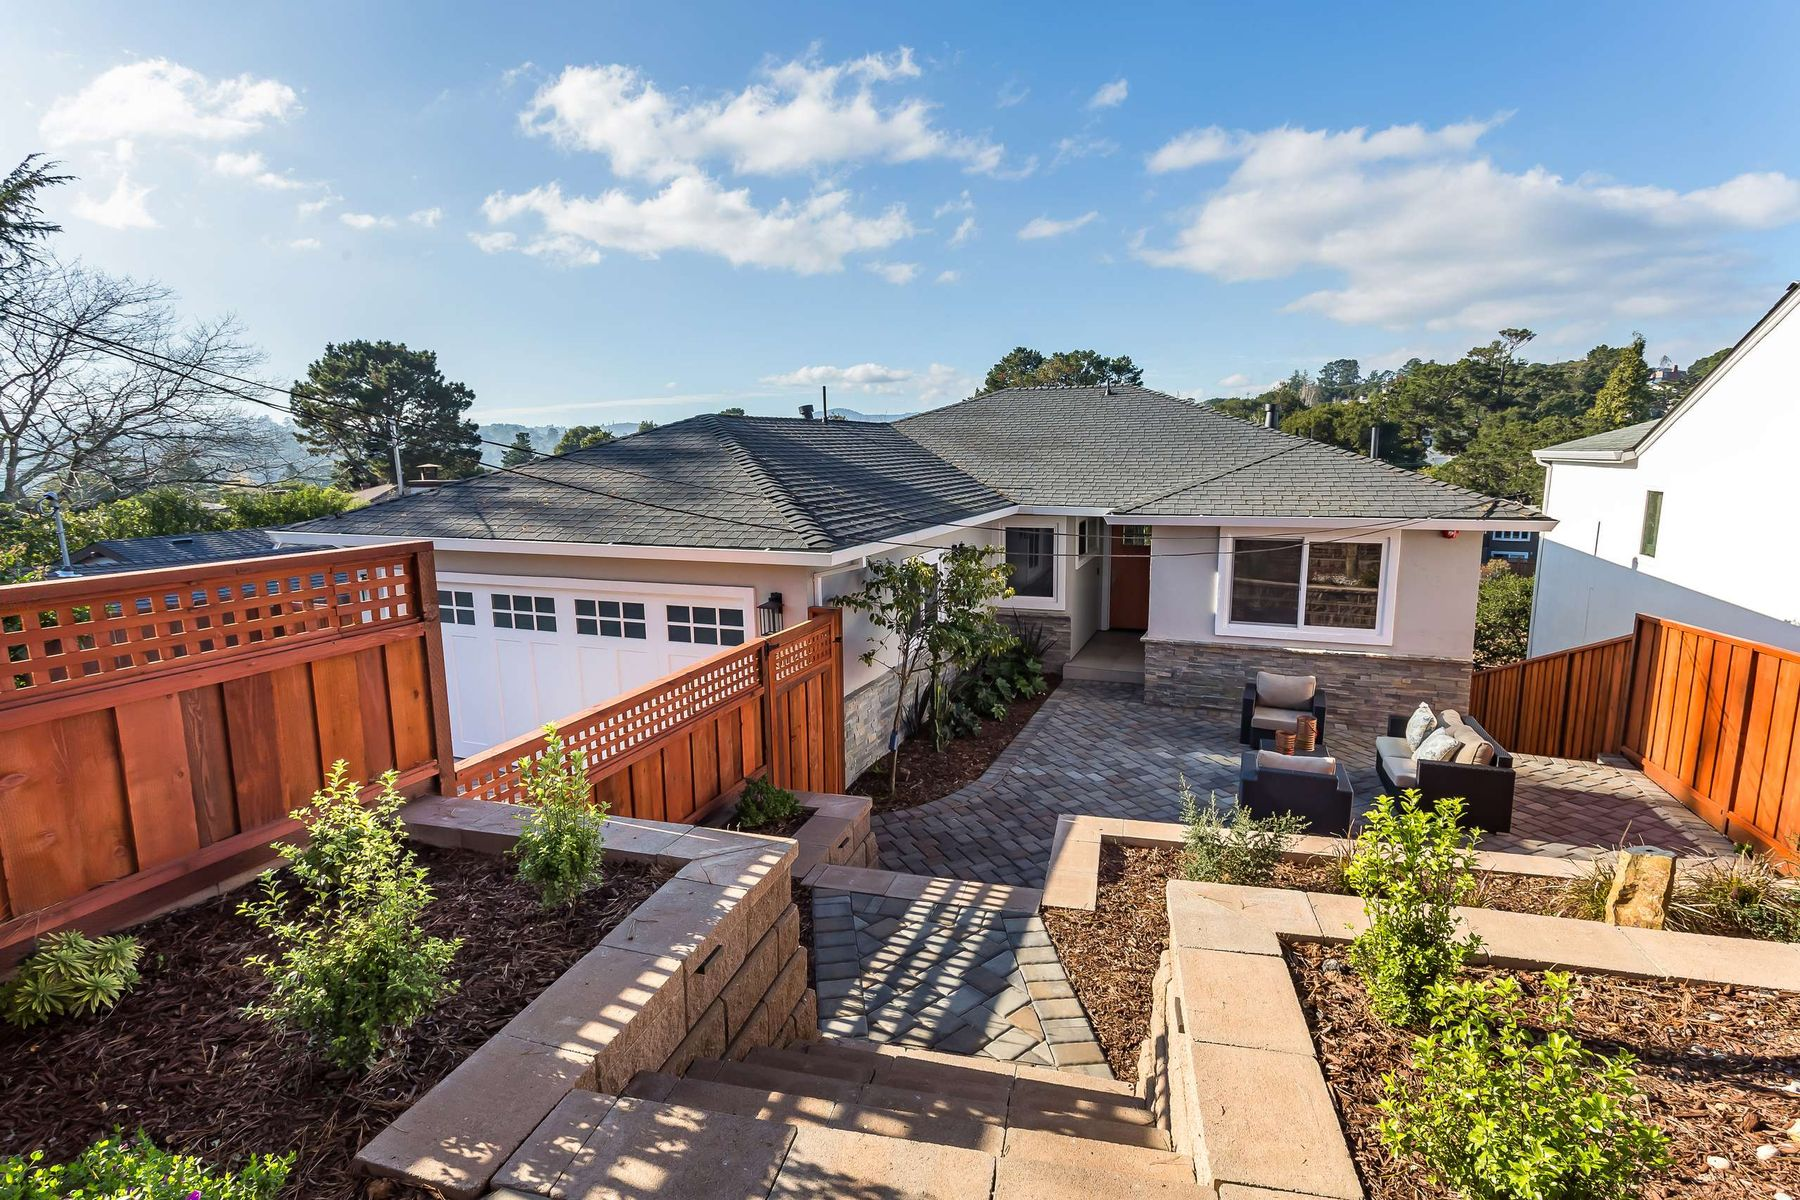 Single Family Home for Active at Luxuriously Renovated Belmont Home 2514 Carmelita Ave Belmont, California 94002 United States